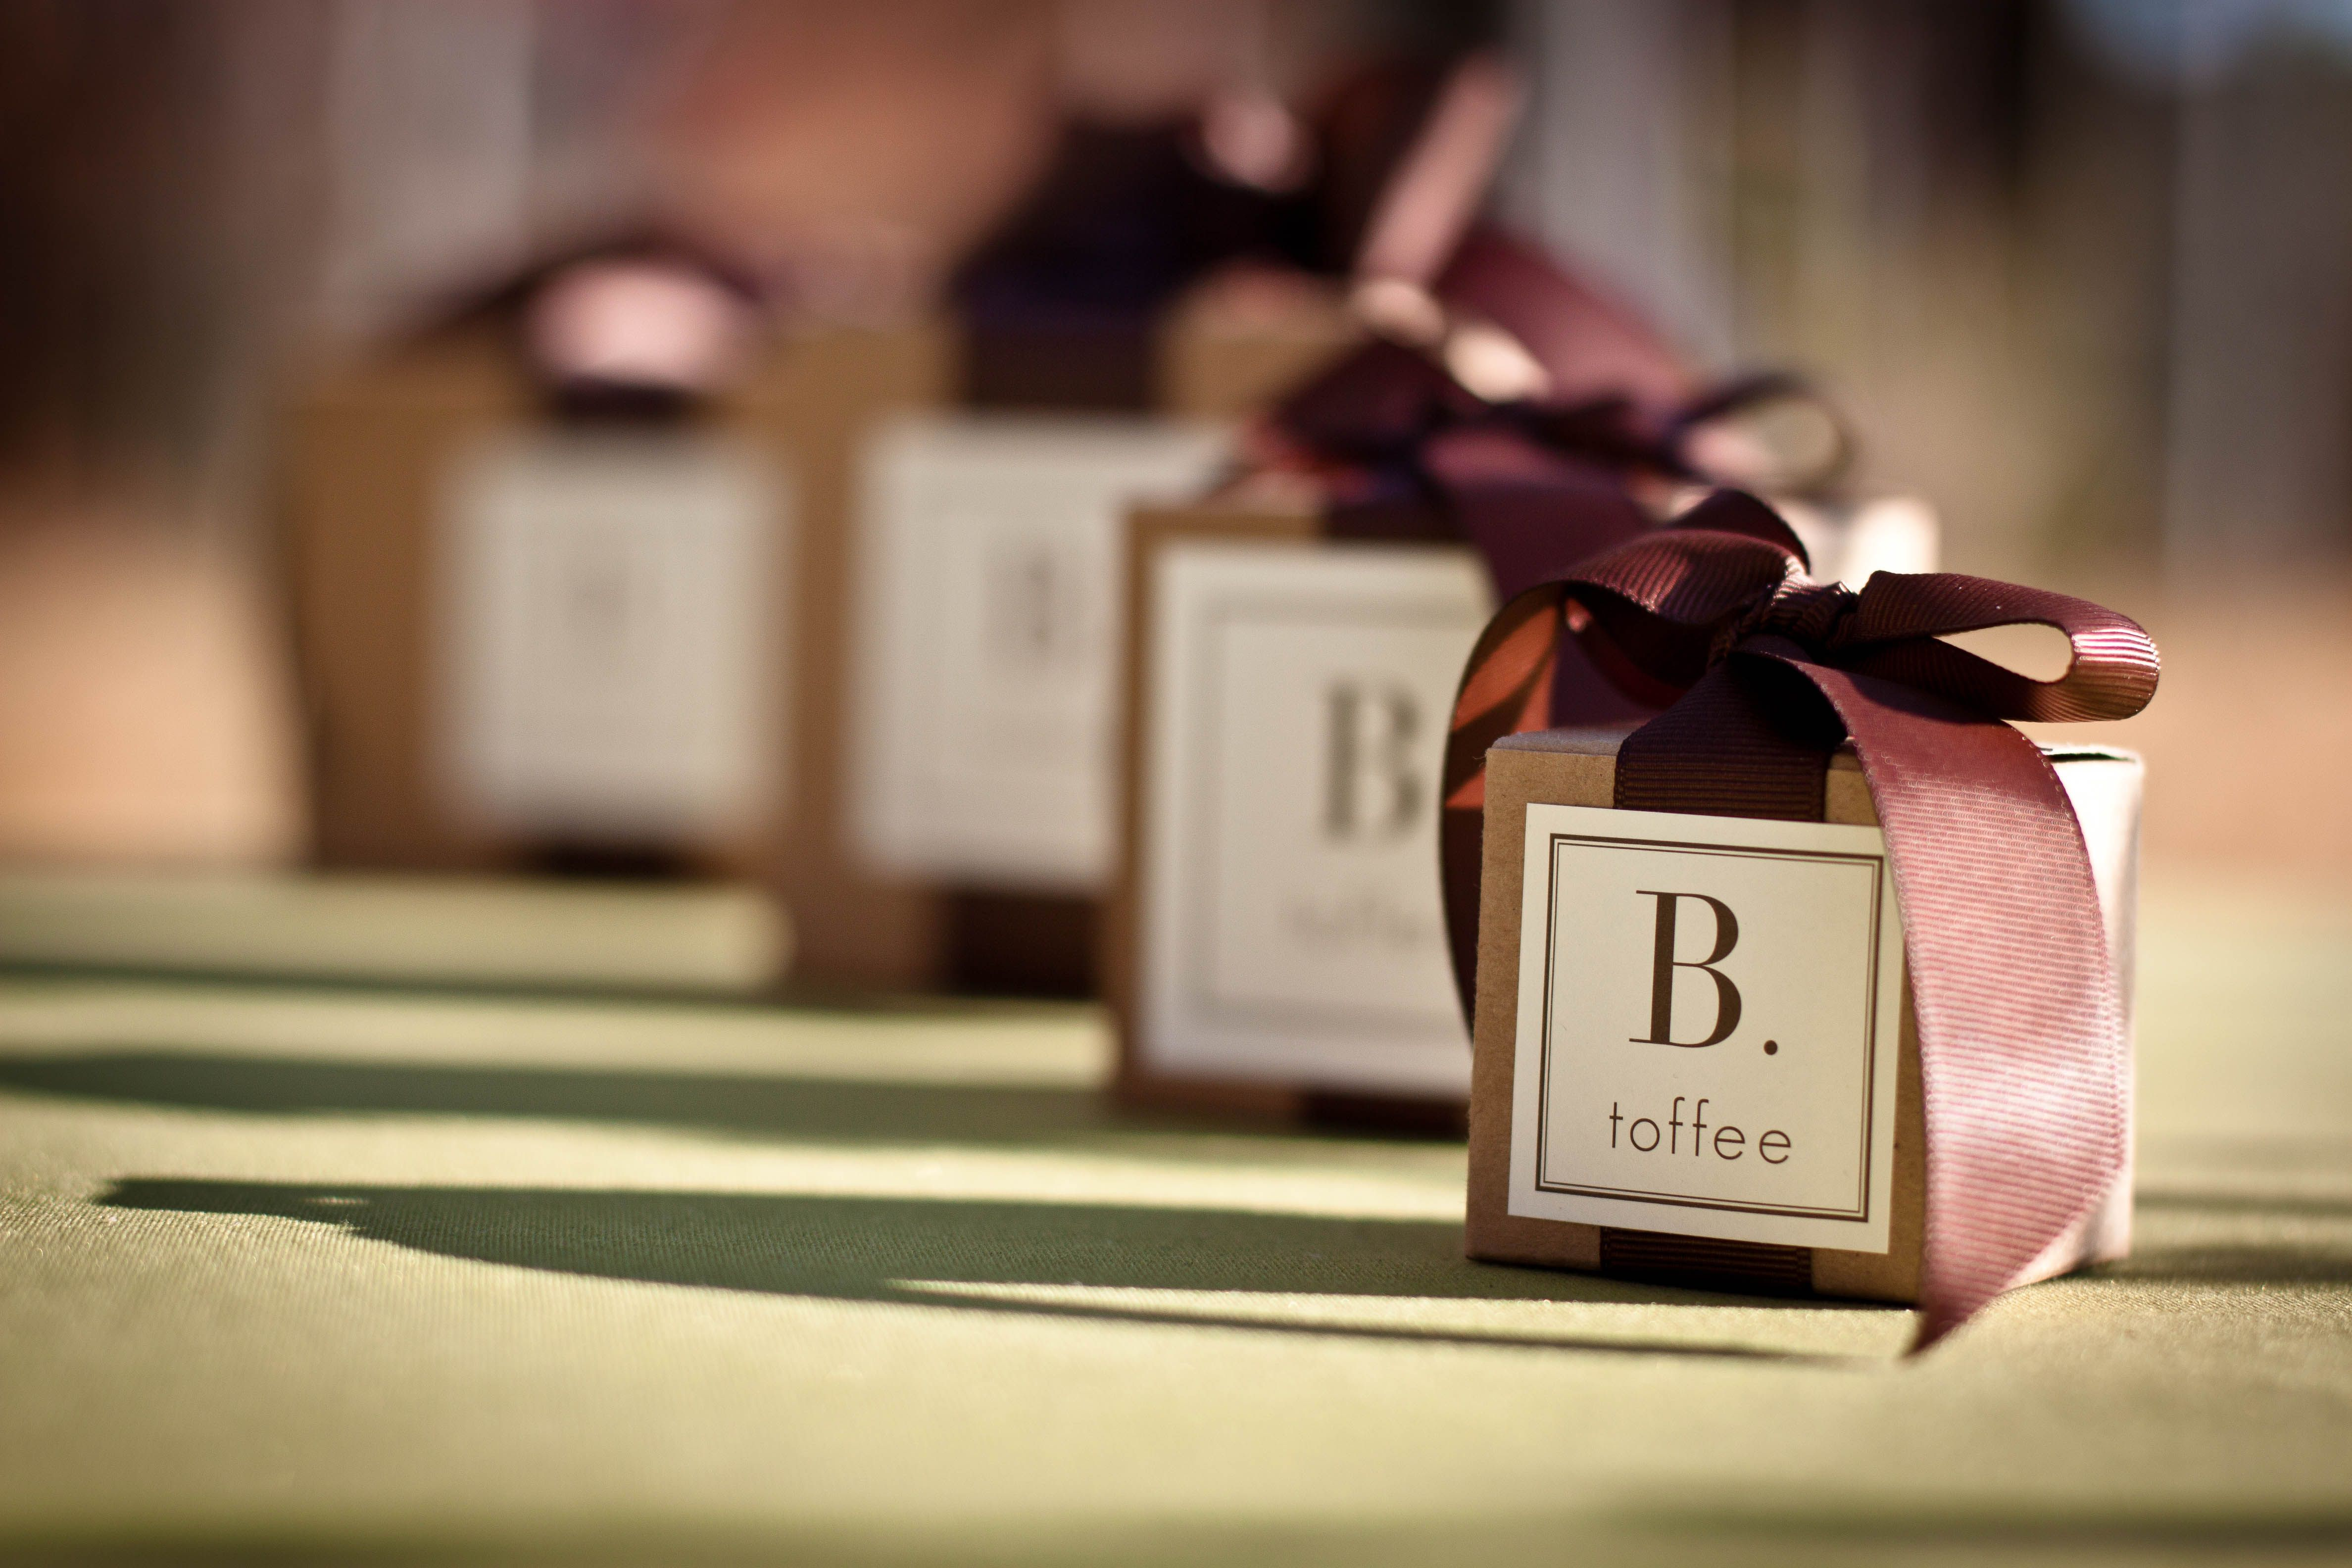 B. toffee: The Perfect Party Favor